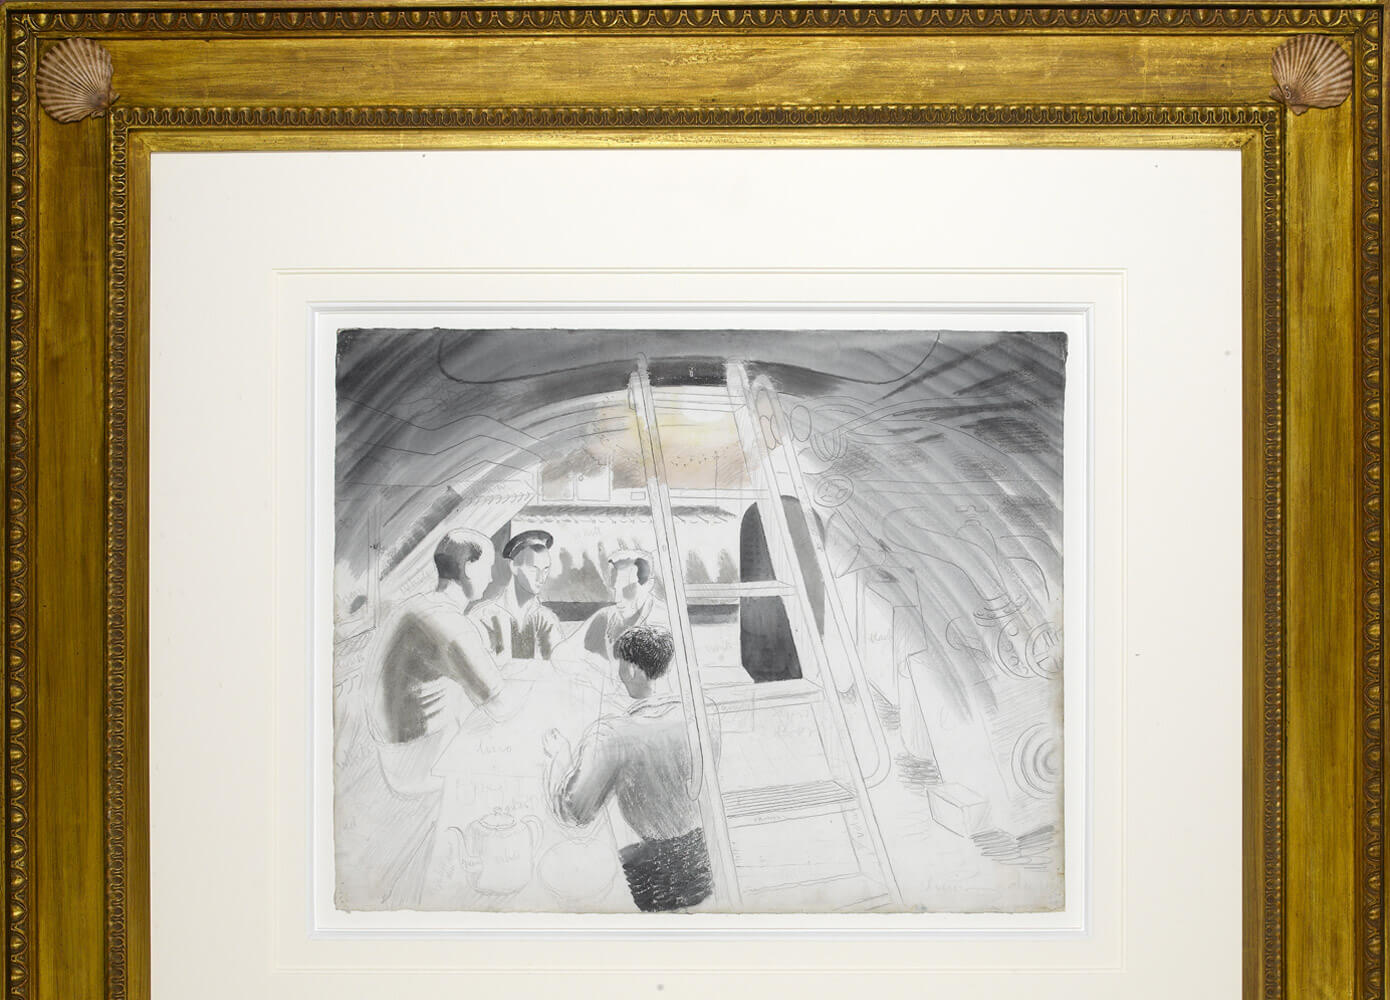 A drawing by Eric Ravilious in a custom frame by Julia Korner